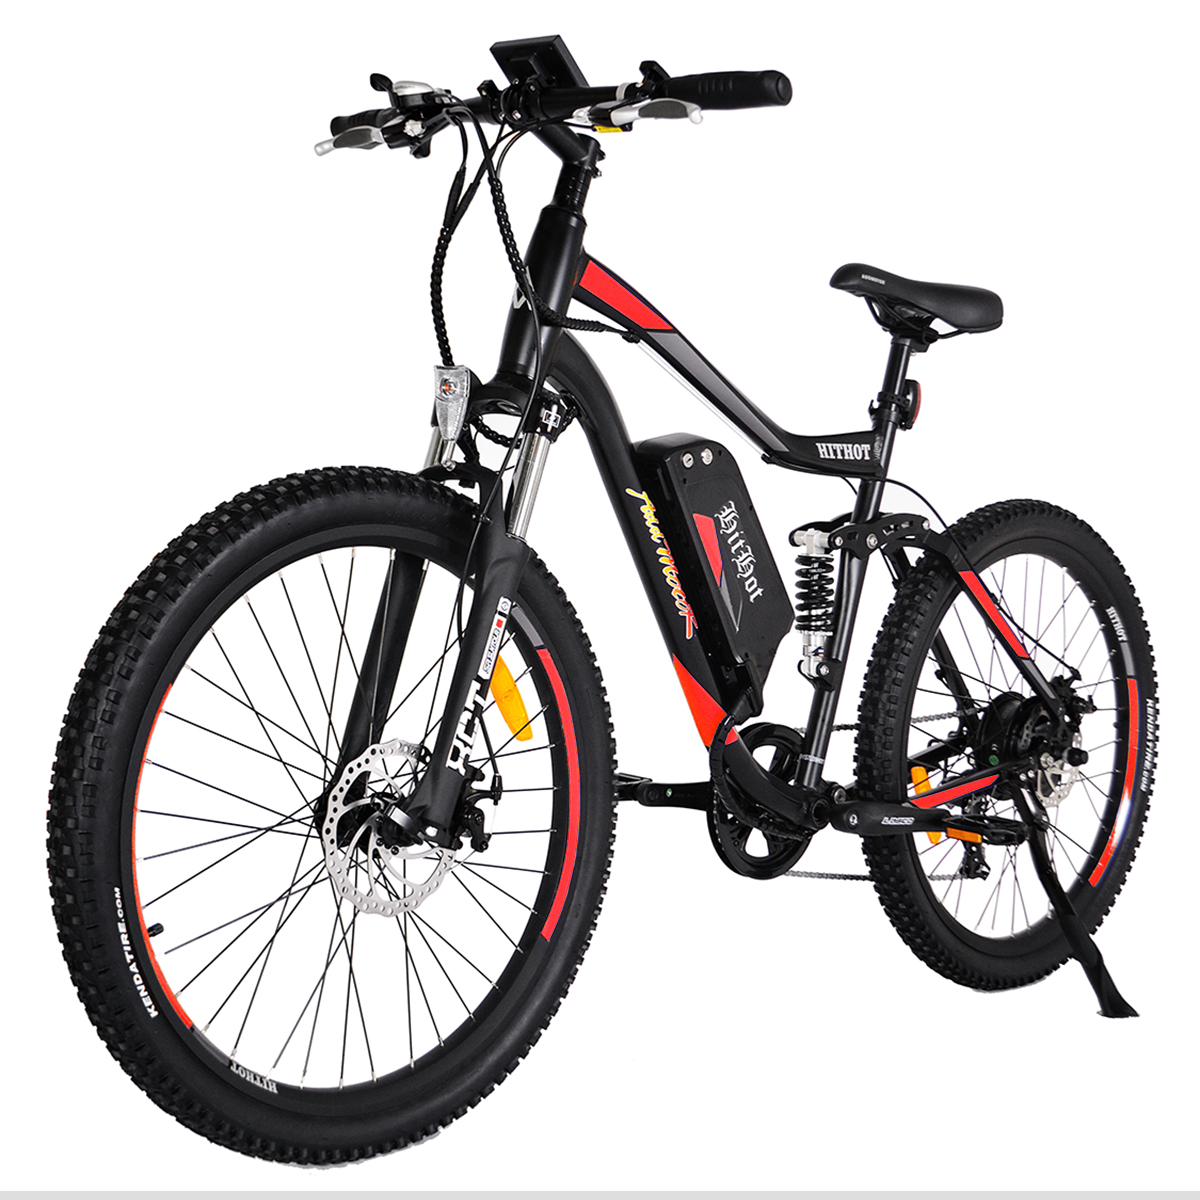 Addmotor HITHOT Electric Bicycles Bikes 48V 500W Bafang Motor 10.4 AH Electric Sport Mountain E-bike 2018 H1 For Adults